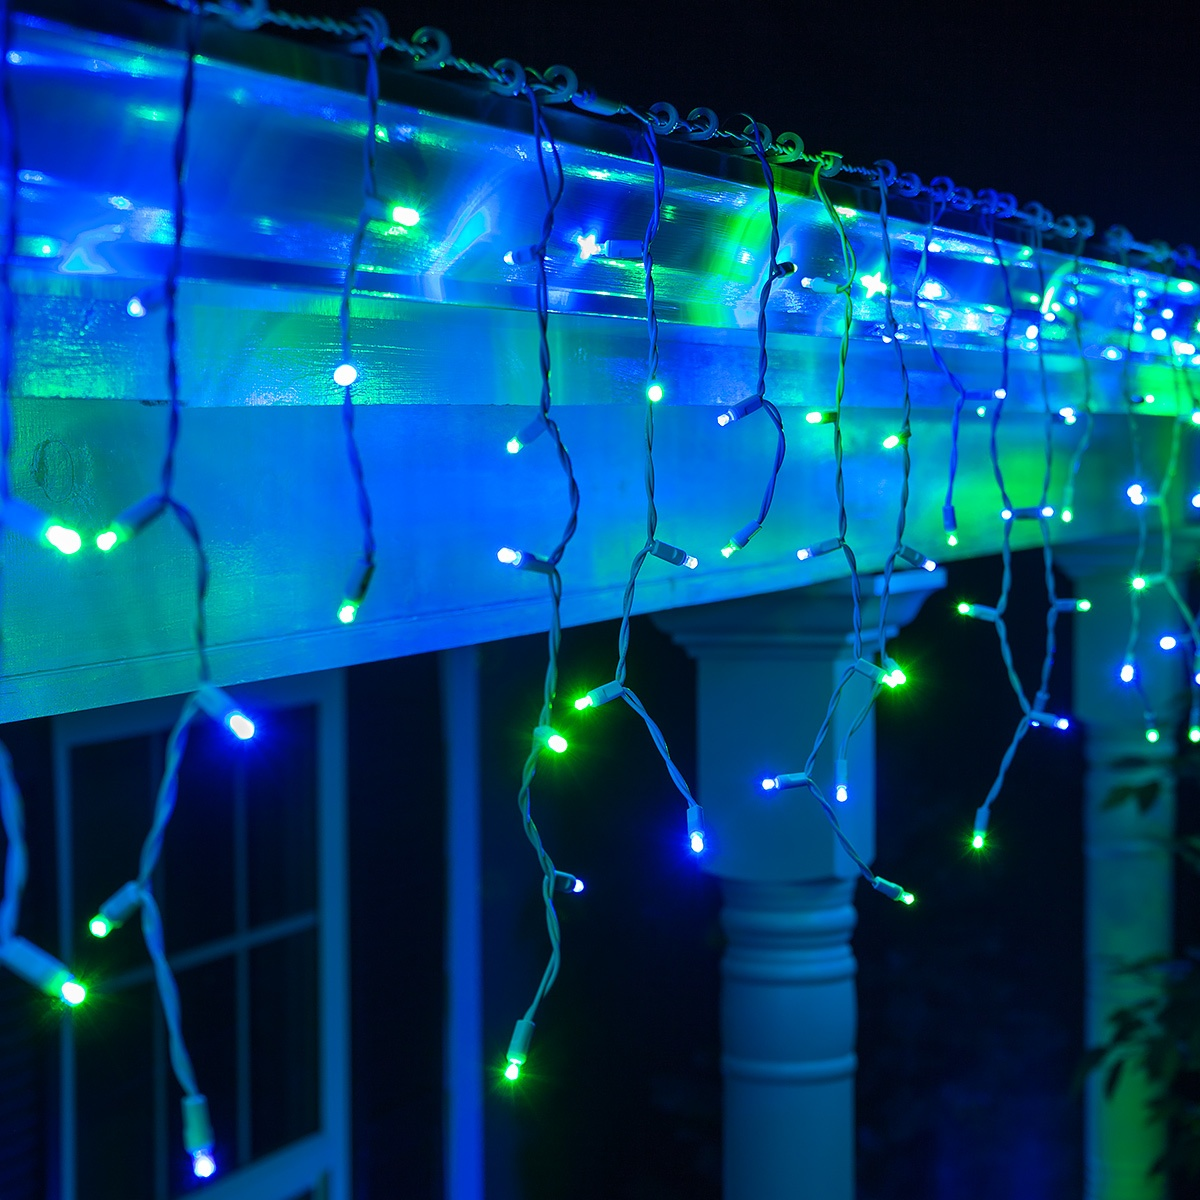 Neon Led Exterieur Led Christmas Lights - 70 5mm Blue, Green Led Icicle Lights